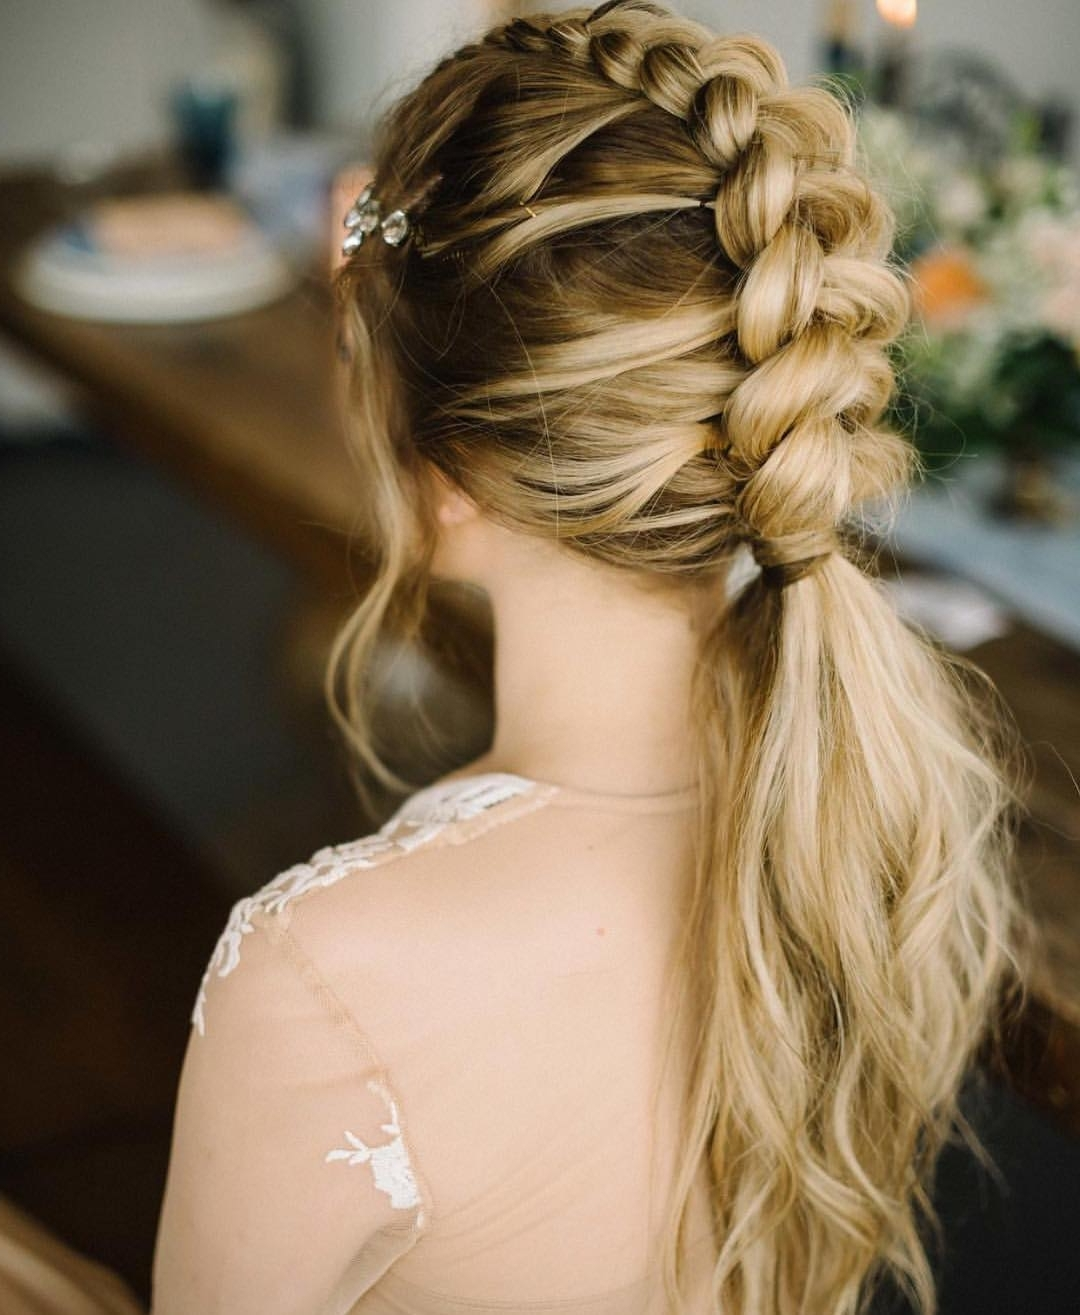 10 Braided Hairstyles For Long Hair – Weddings, Festivals & Holiday Within 2018 Artistically Undone Braid Ponytail Hairstyles (View 2 of 20)